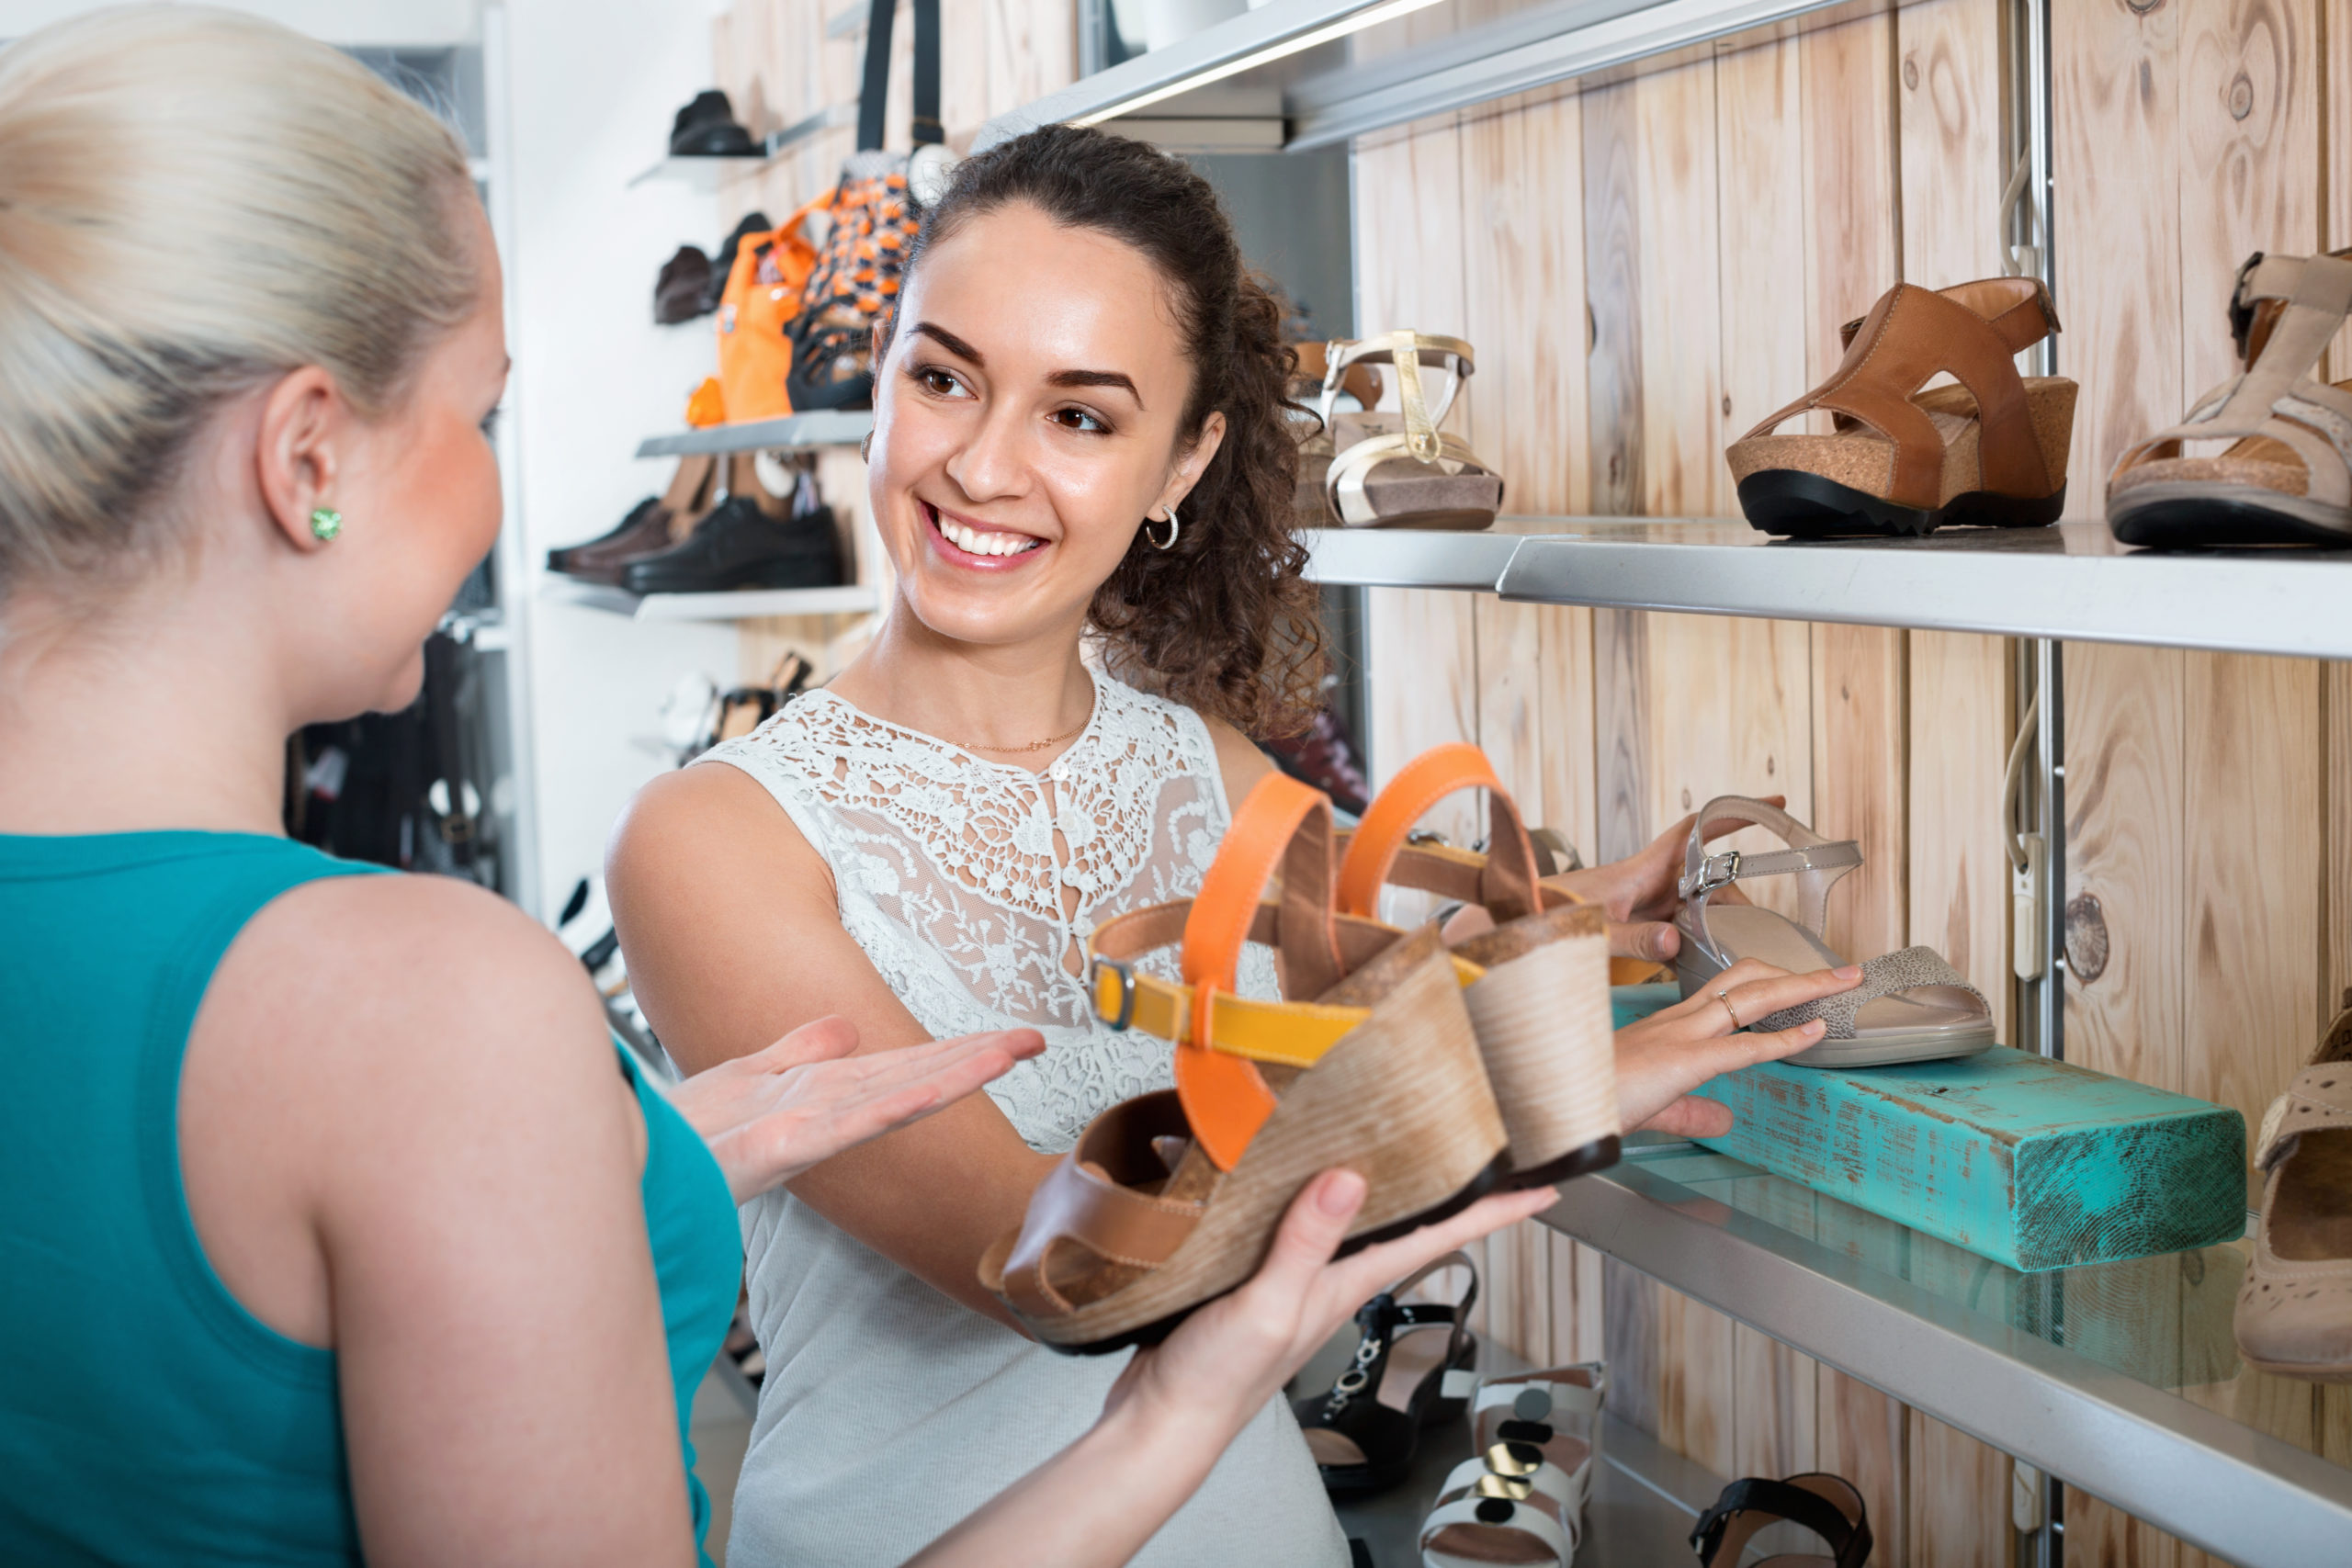 A sales assistant shows a customer some shoes